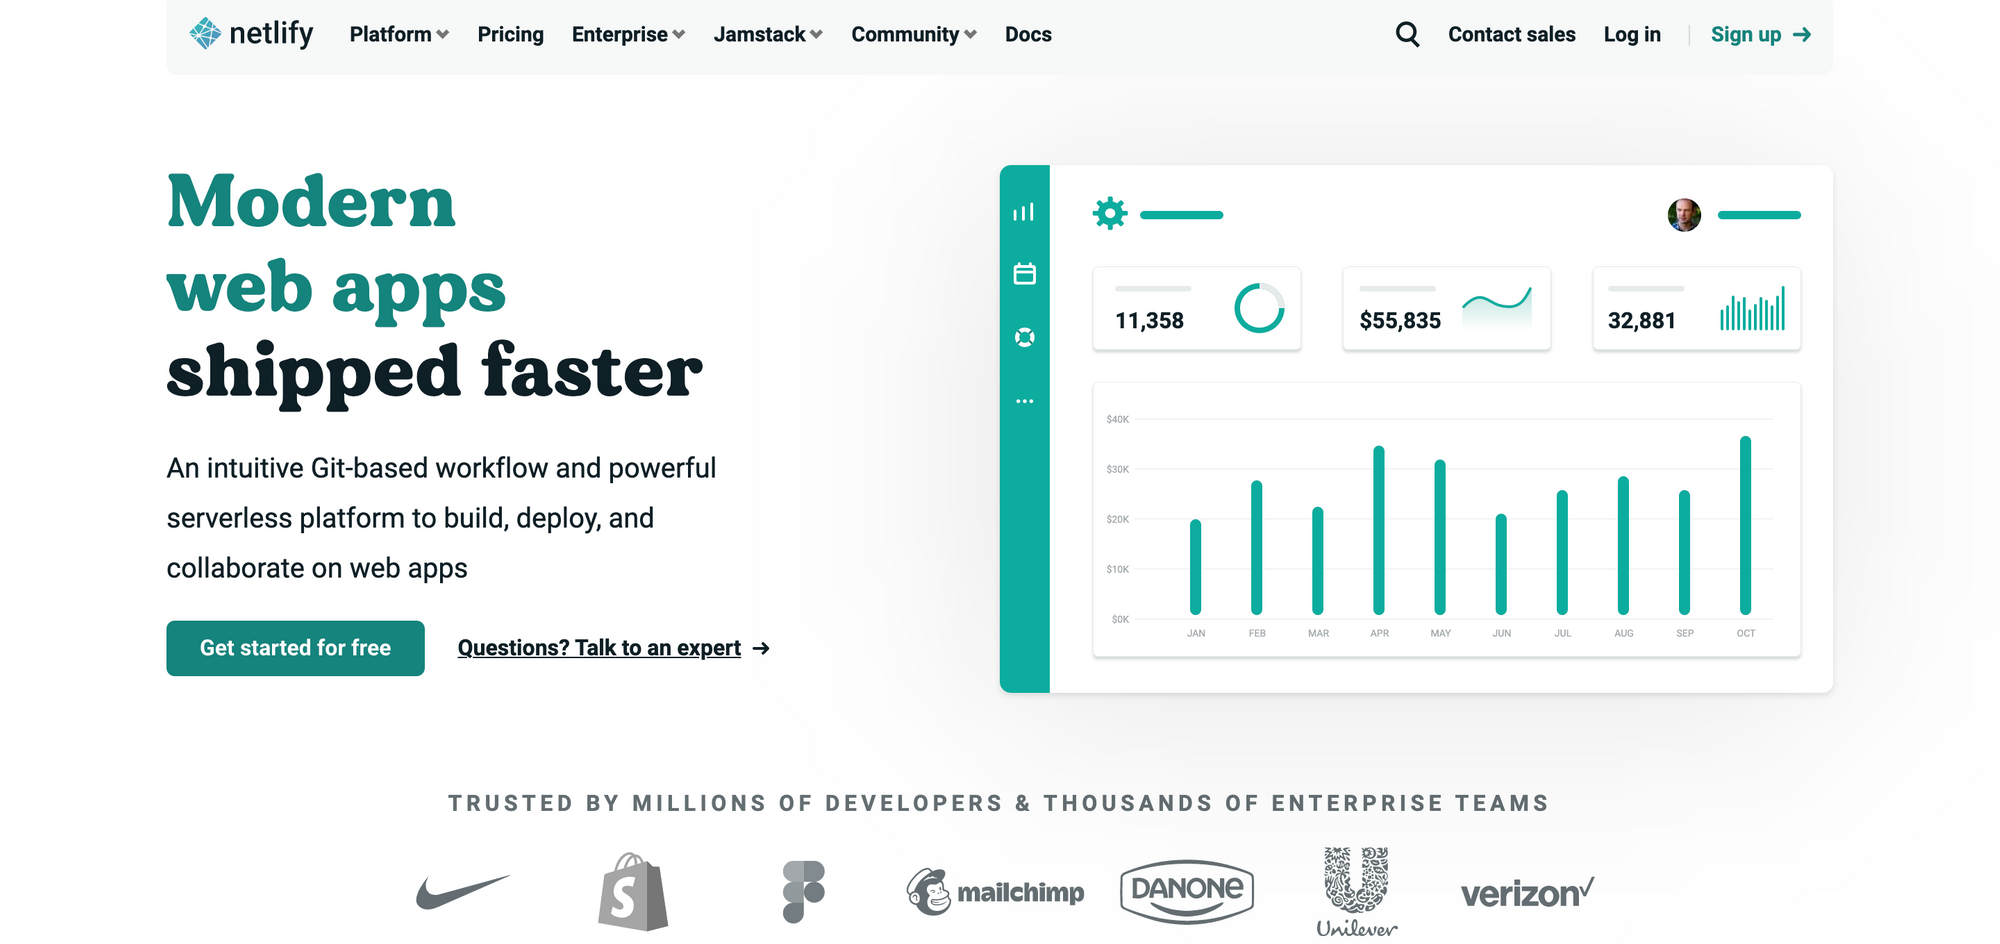 Netlify homepage. Modern web apps shipped faster An intuitive Git-based workflow and powerful serverless platform to build, deploy, and collaborate on web apps